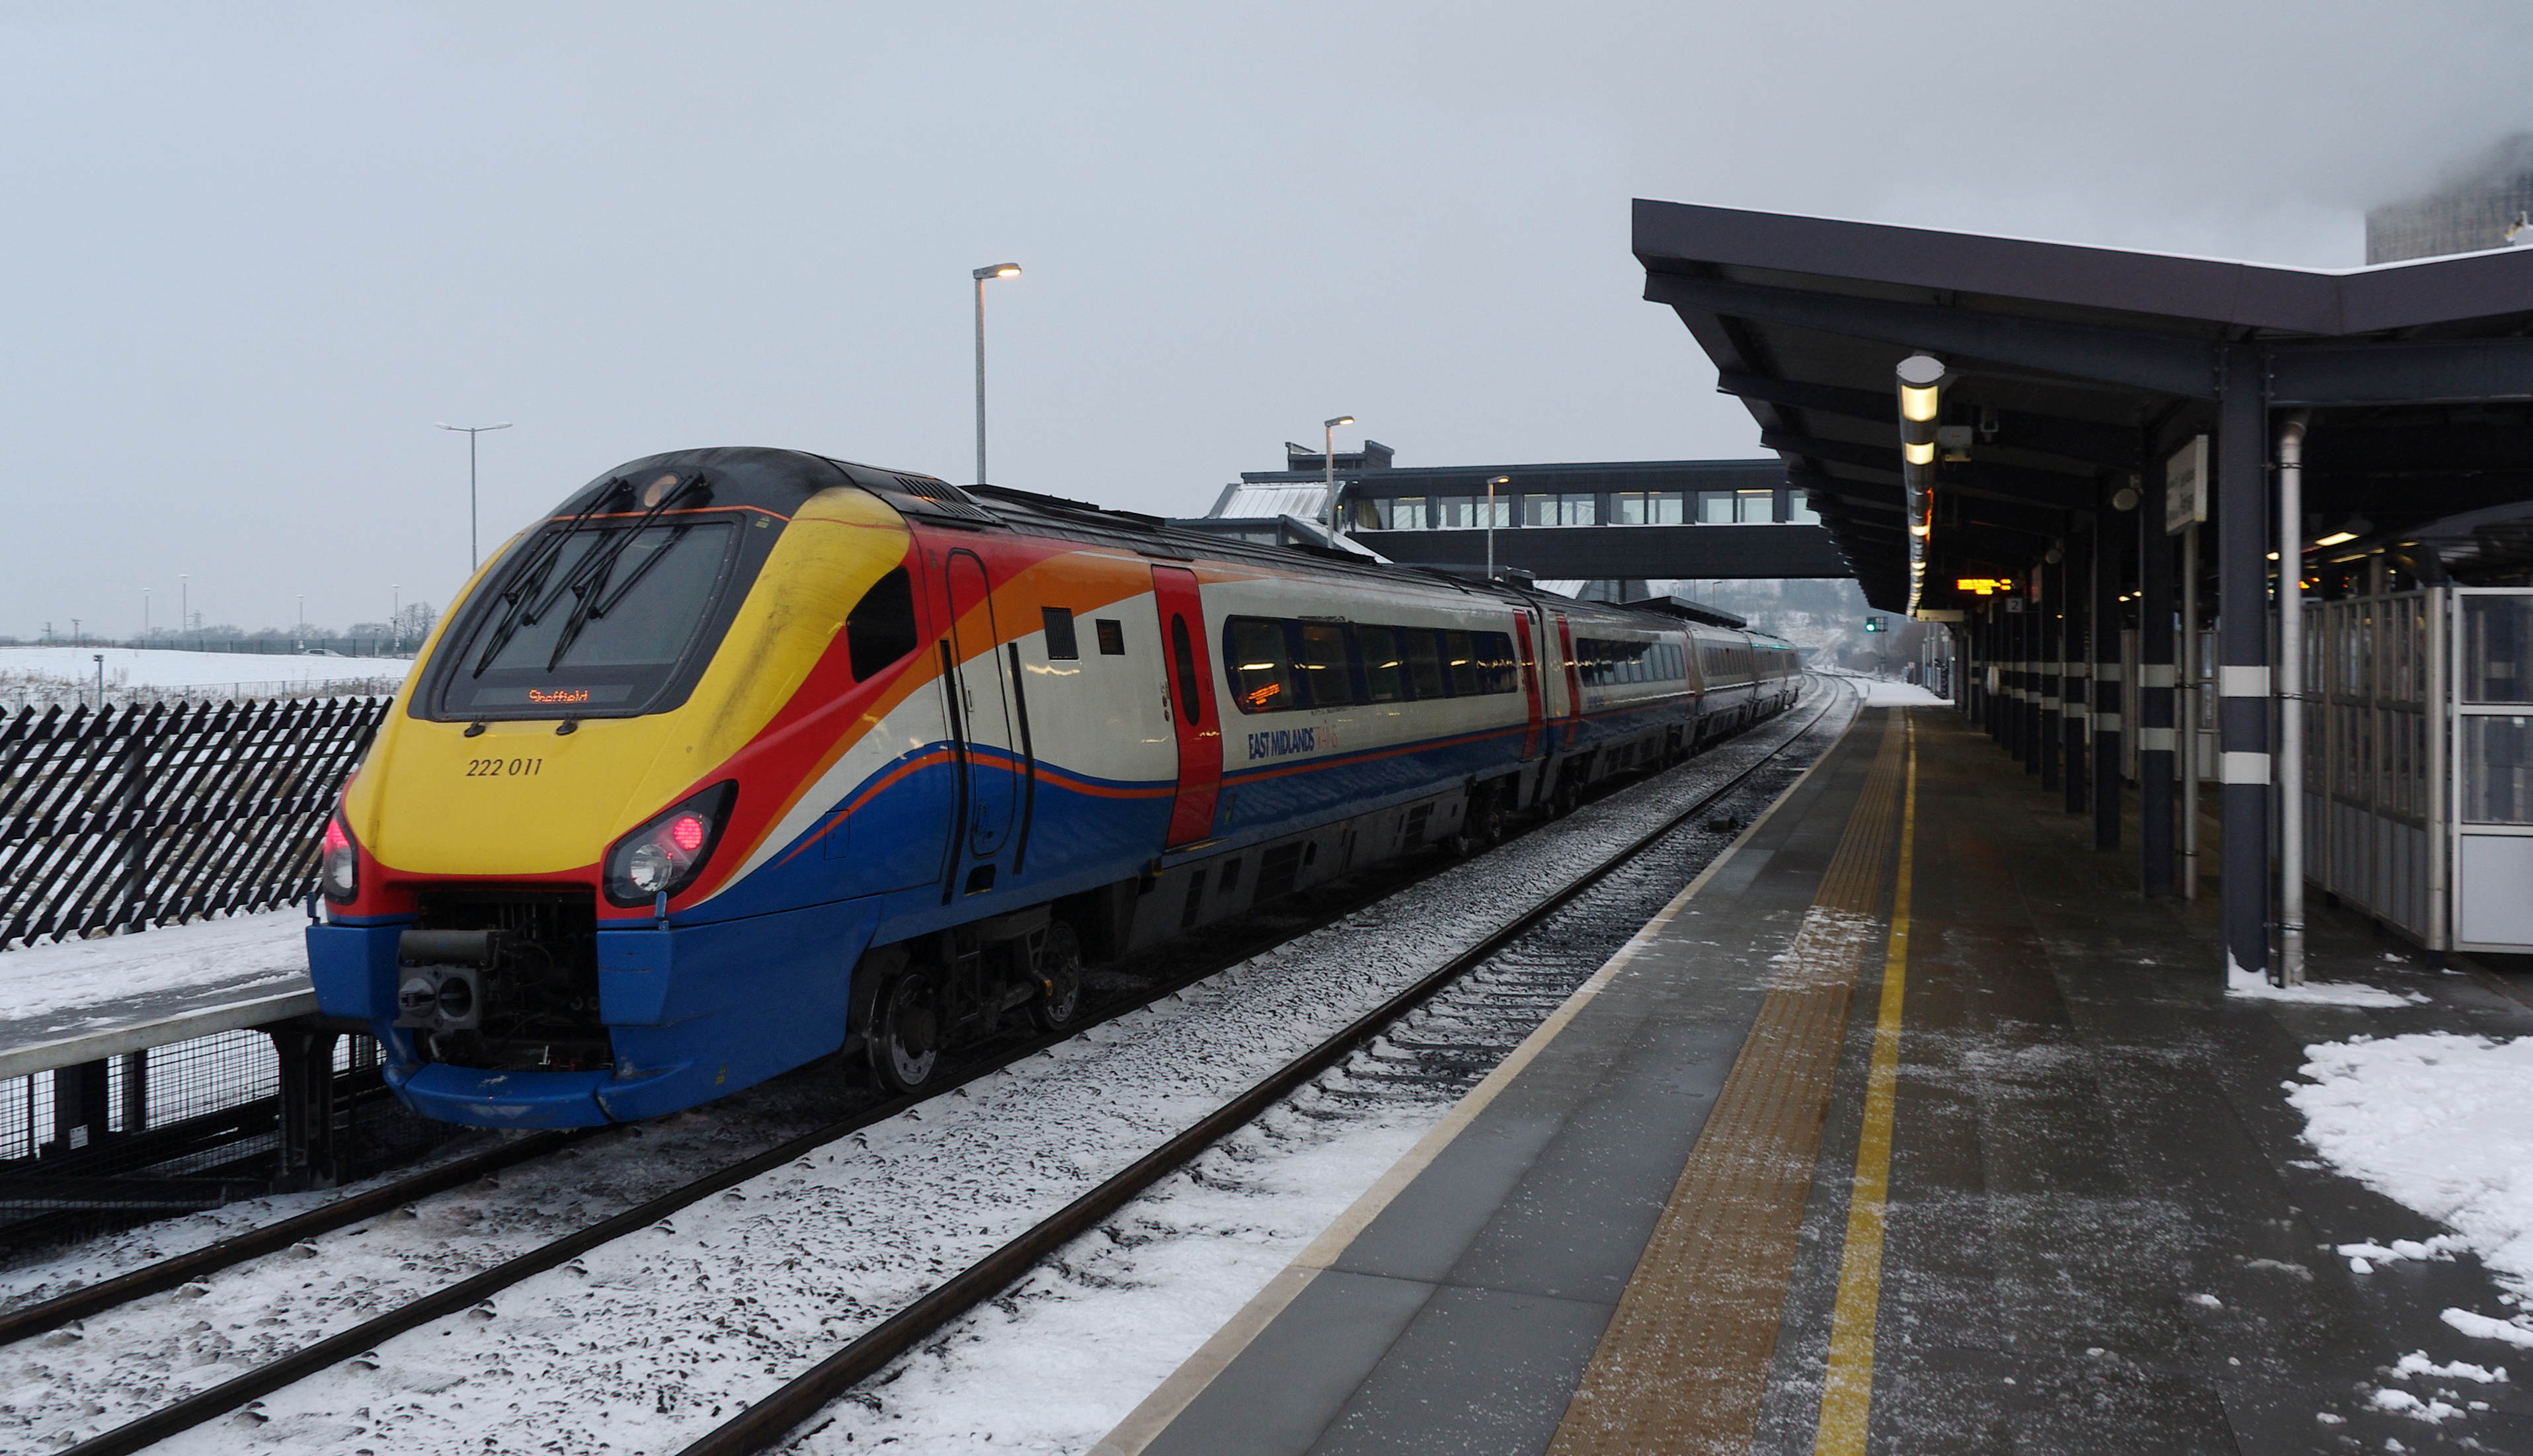 East midlands trains fotopic 3